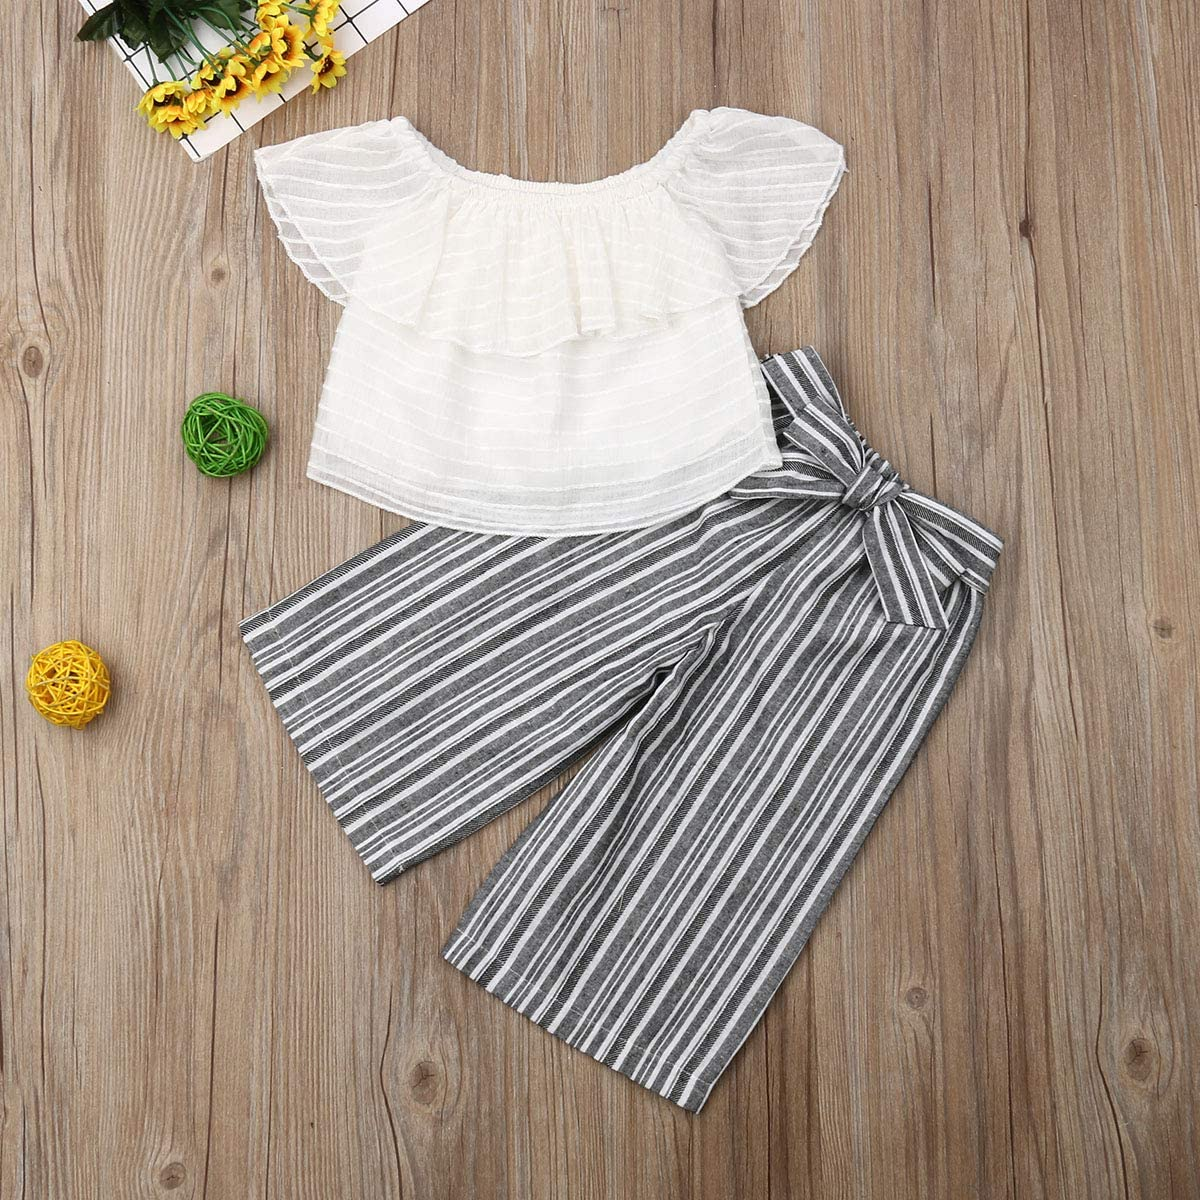 Lace Floral Long Skirt Outfit Set Summer Clothes Toddler Baby Girl White Off Shoulder Ruffle Sleeve Top